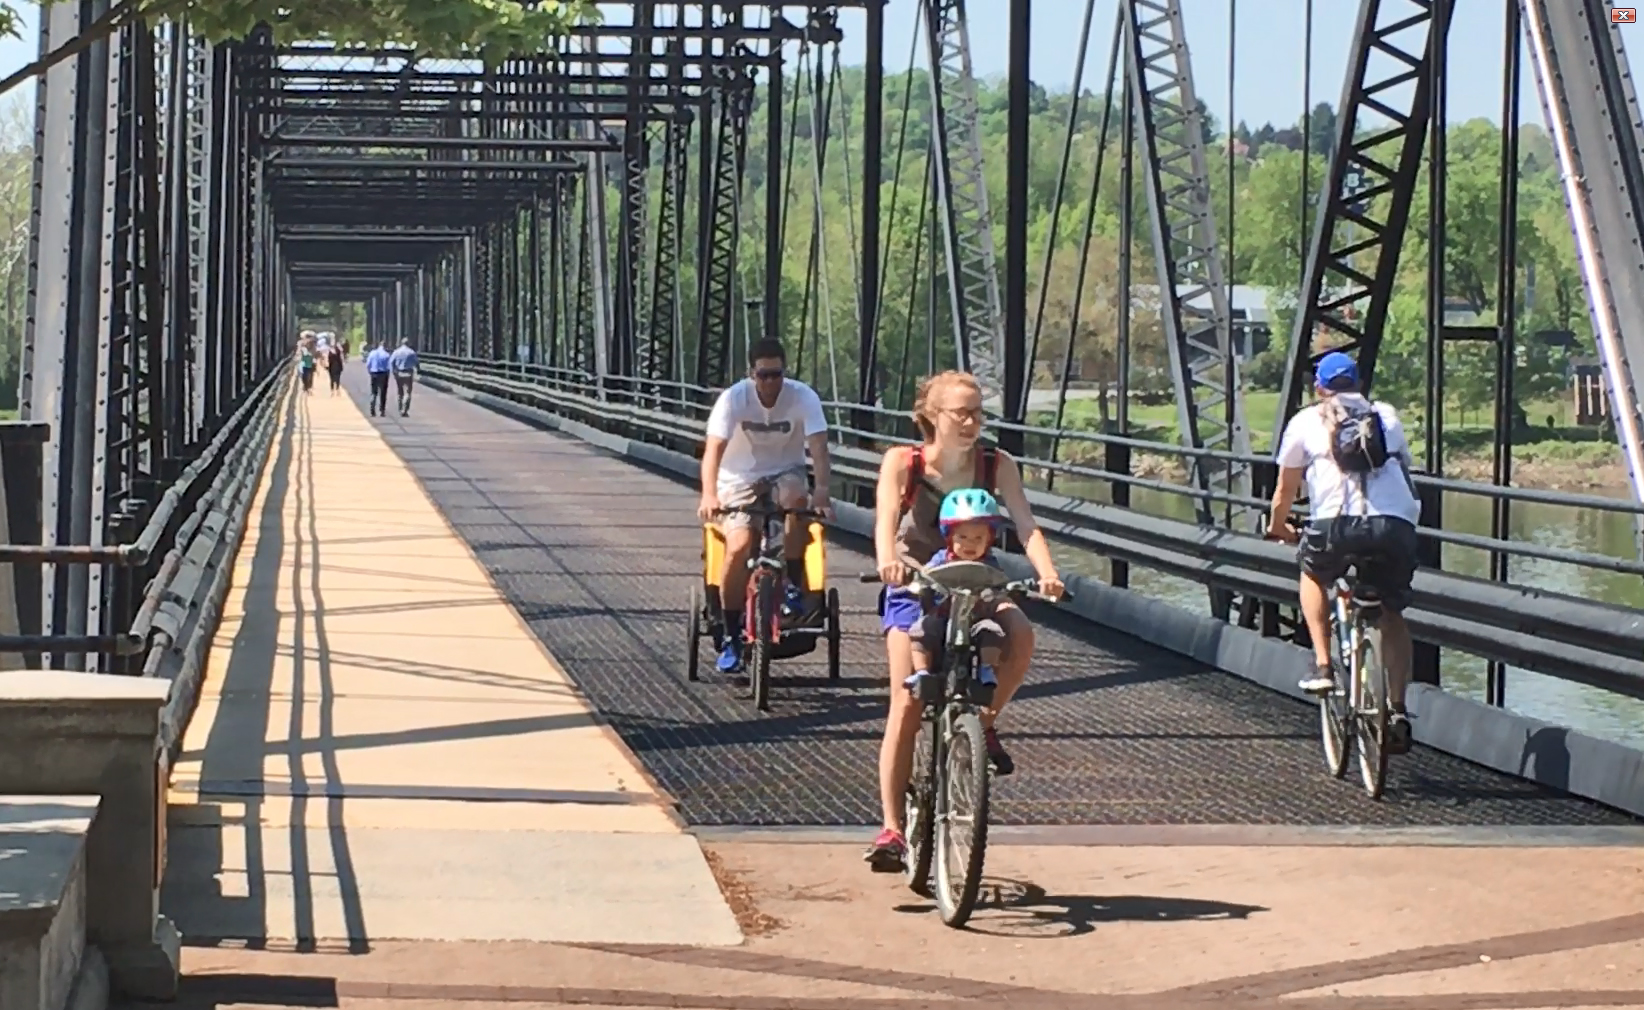 Bicyclists and pedestrians on the Walnut St. Bridge, Harrisburg